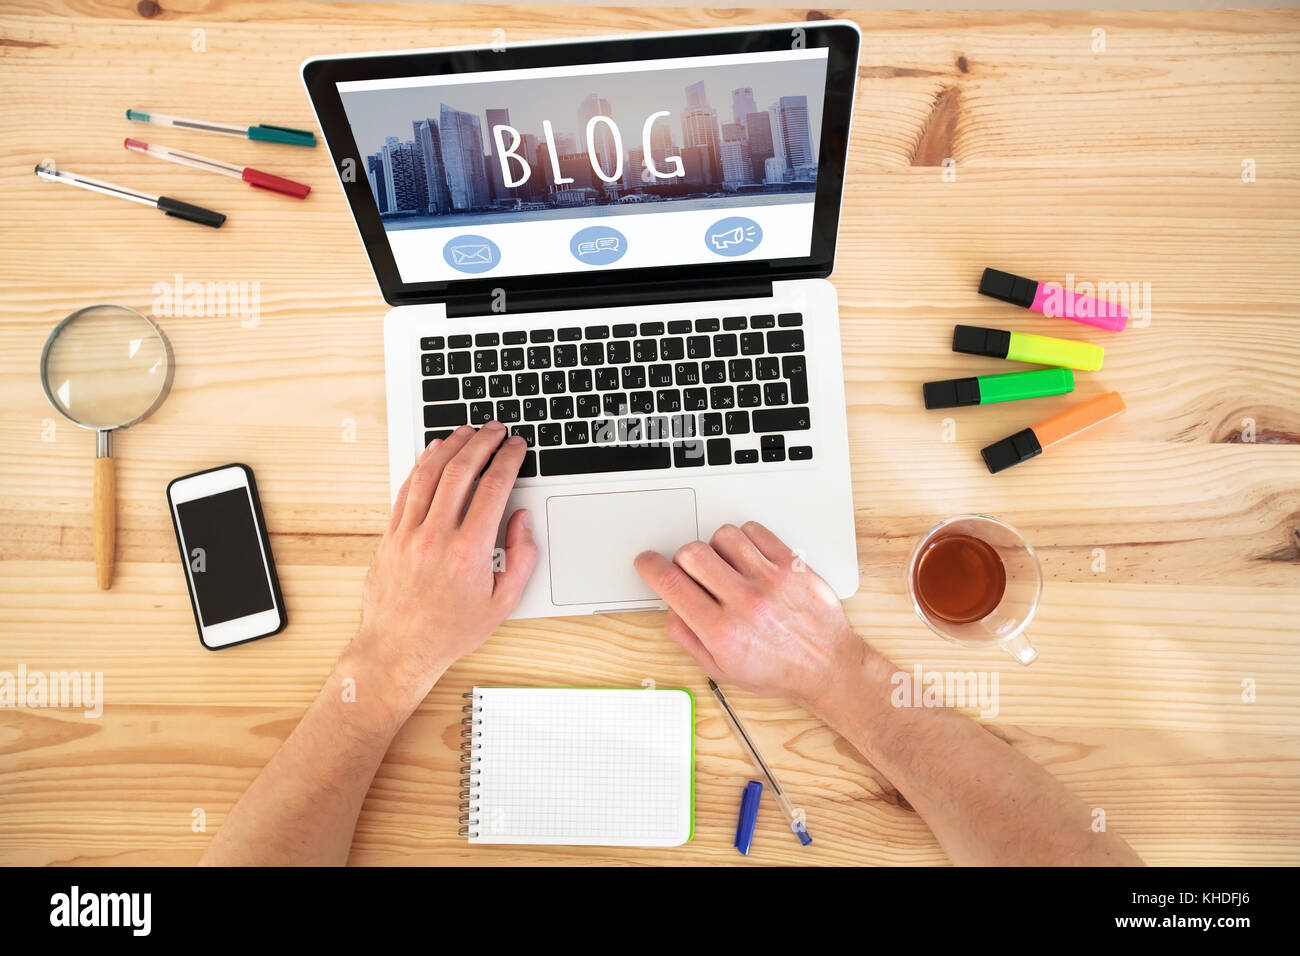 blog writing meaning